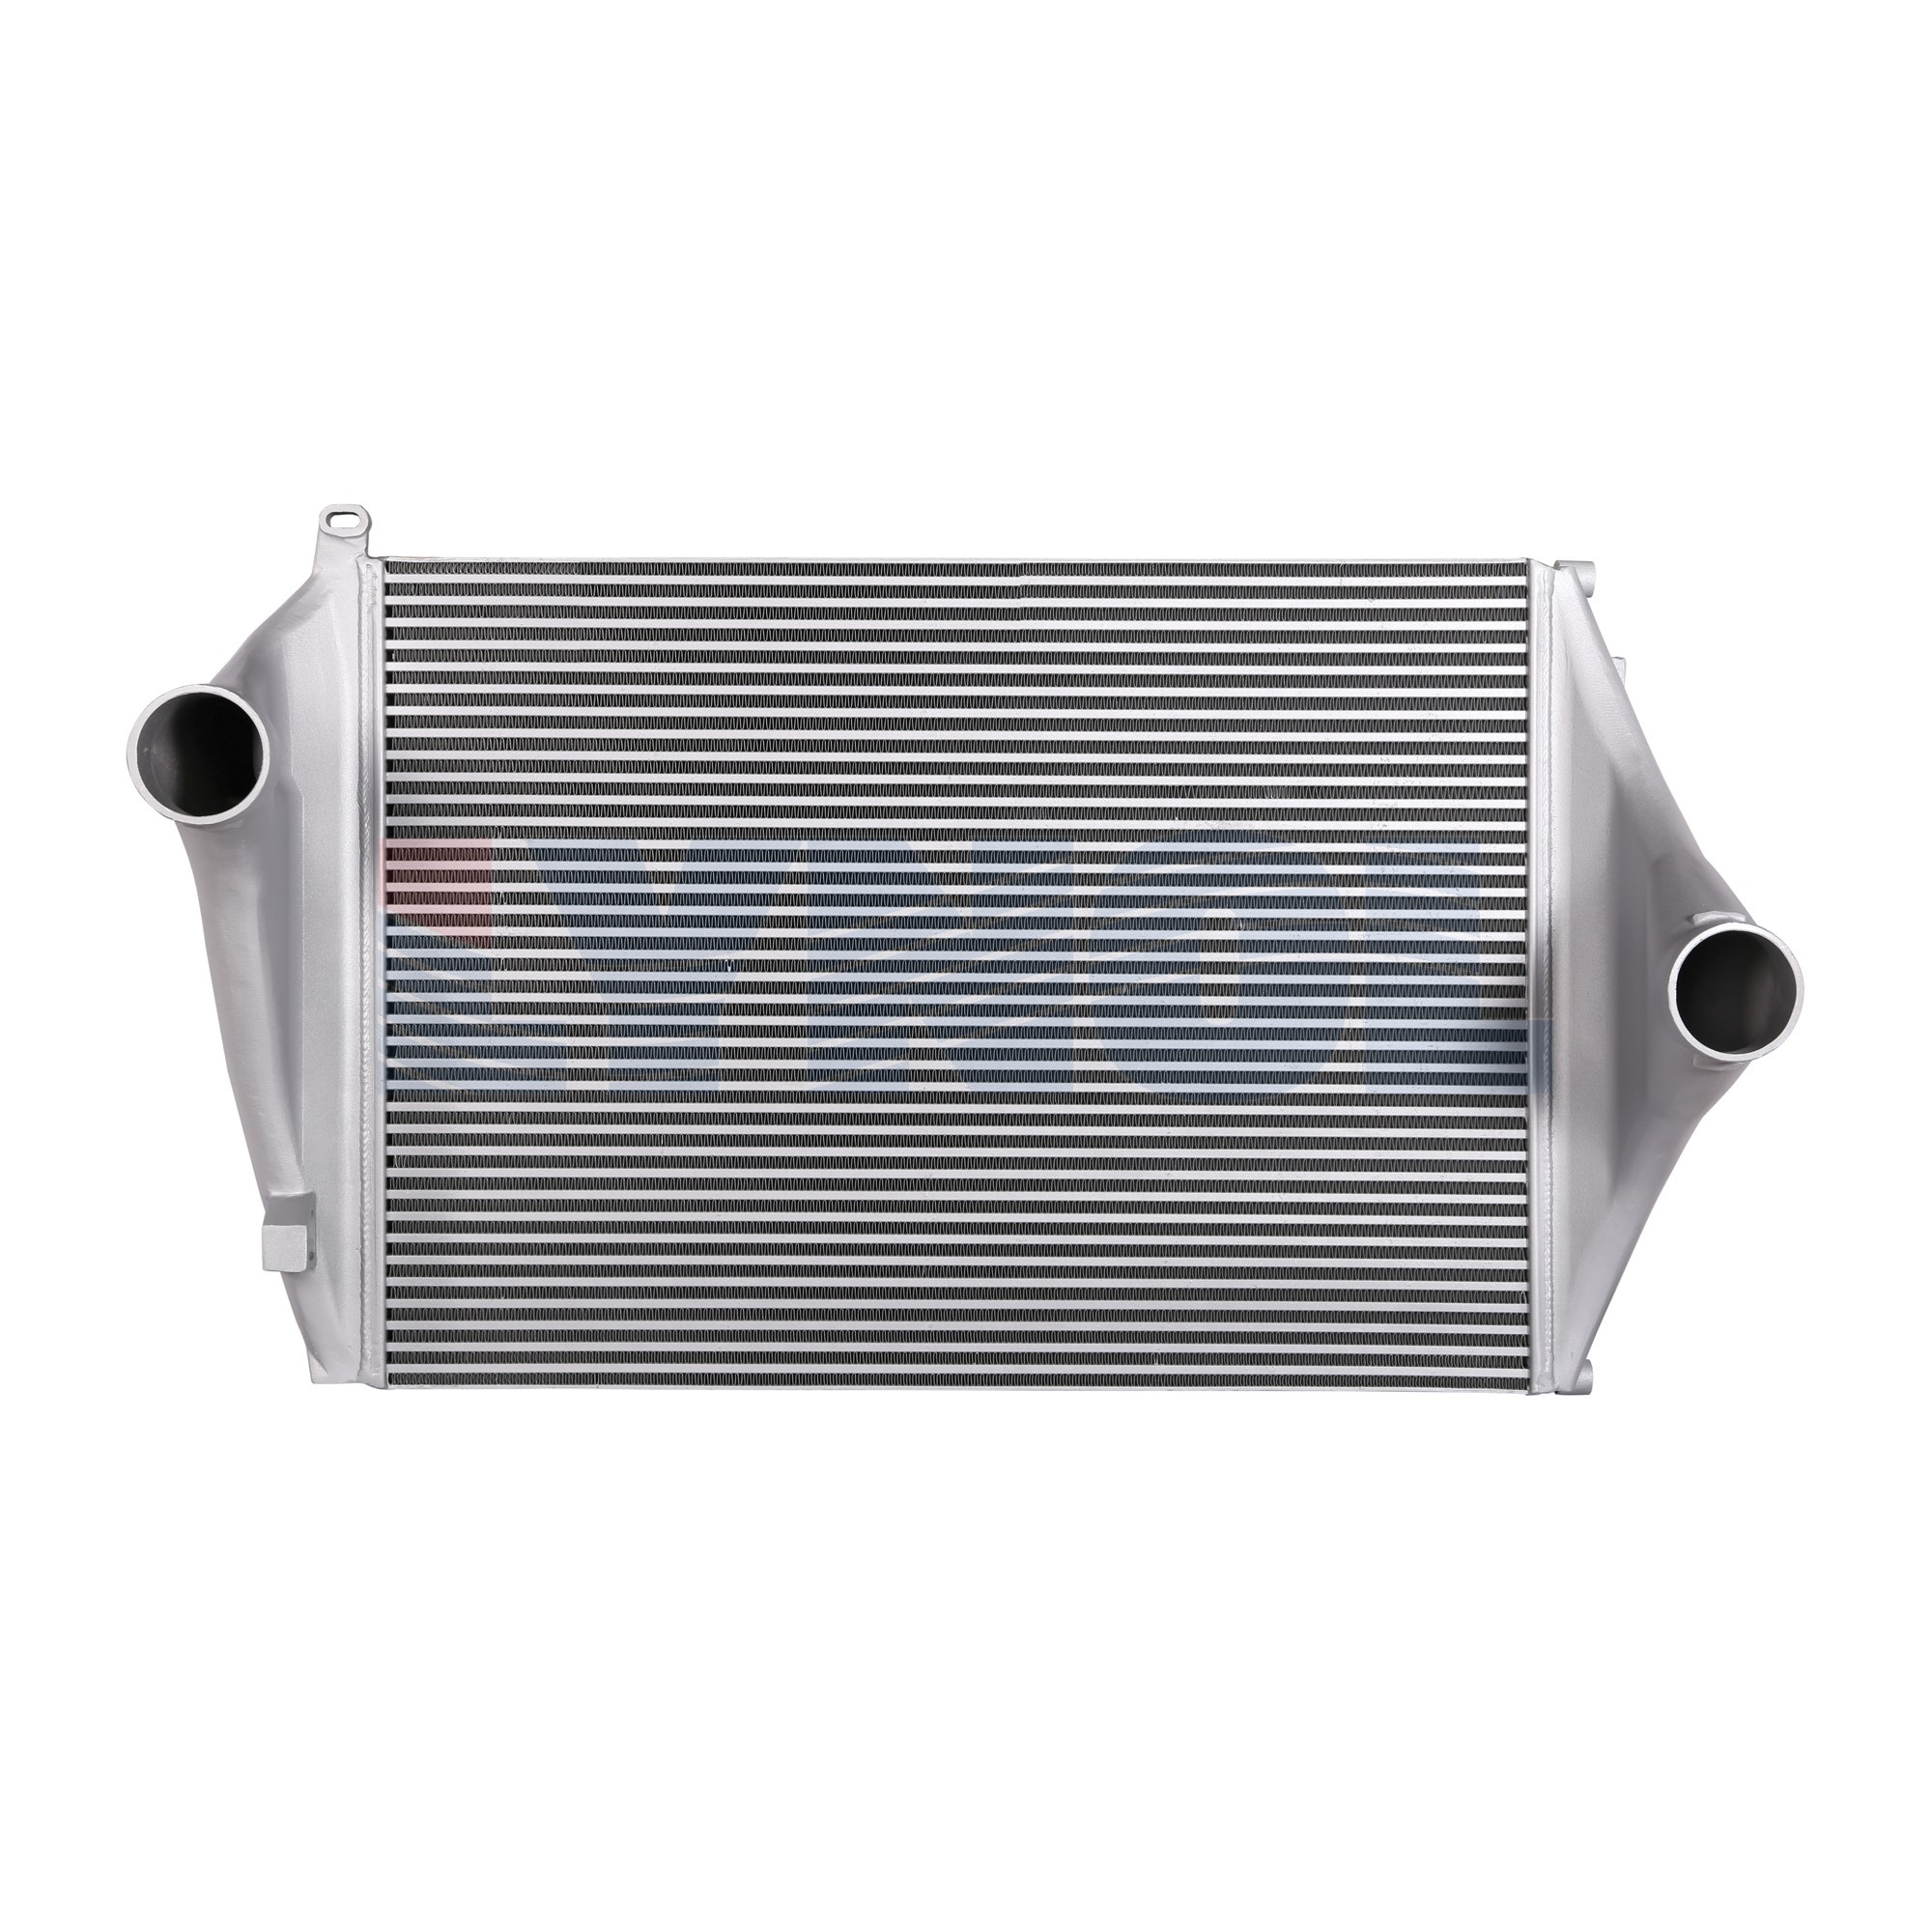 2400-004 - Freightliner Charge Air Cooler